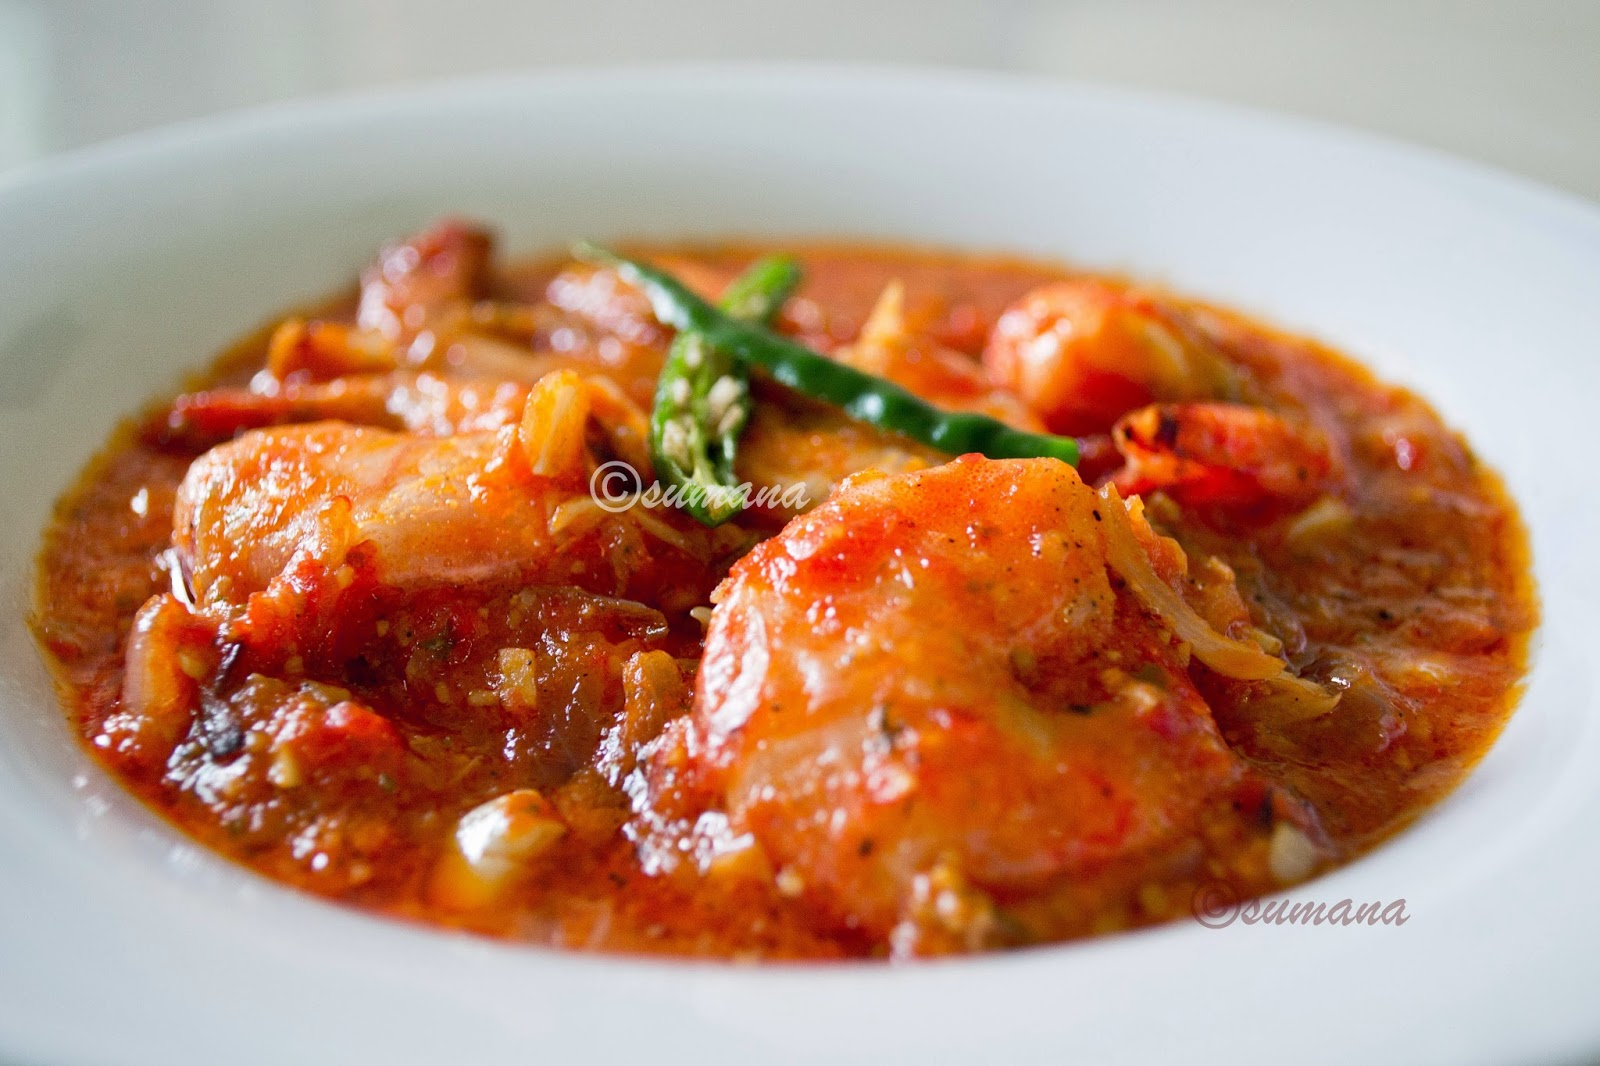 Gambus pil pil is a spicy prawn recipe with garlic chilli and olive oil